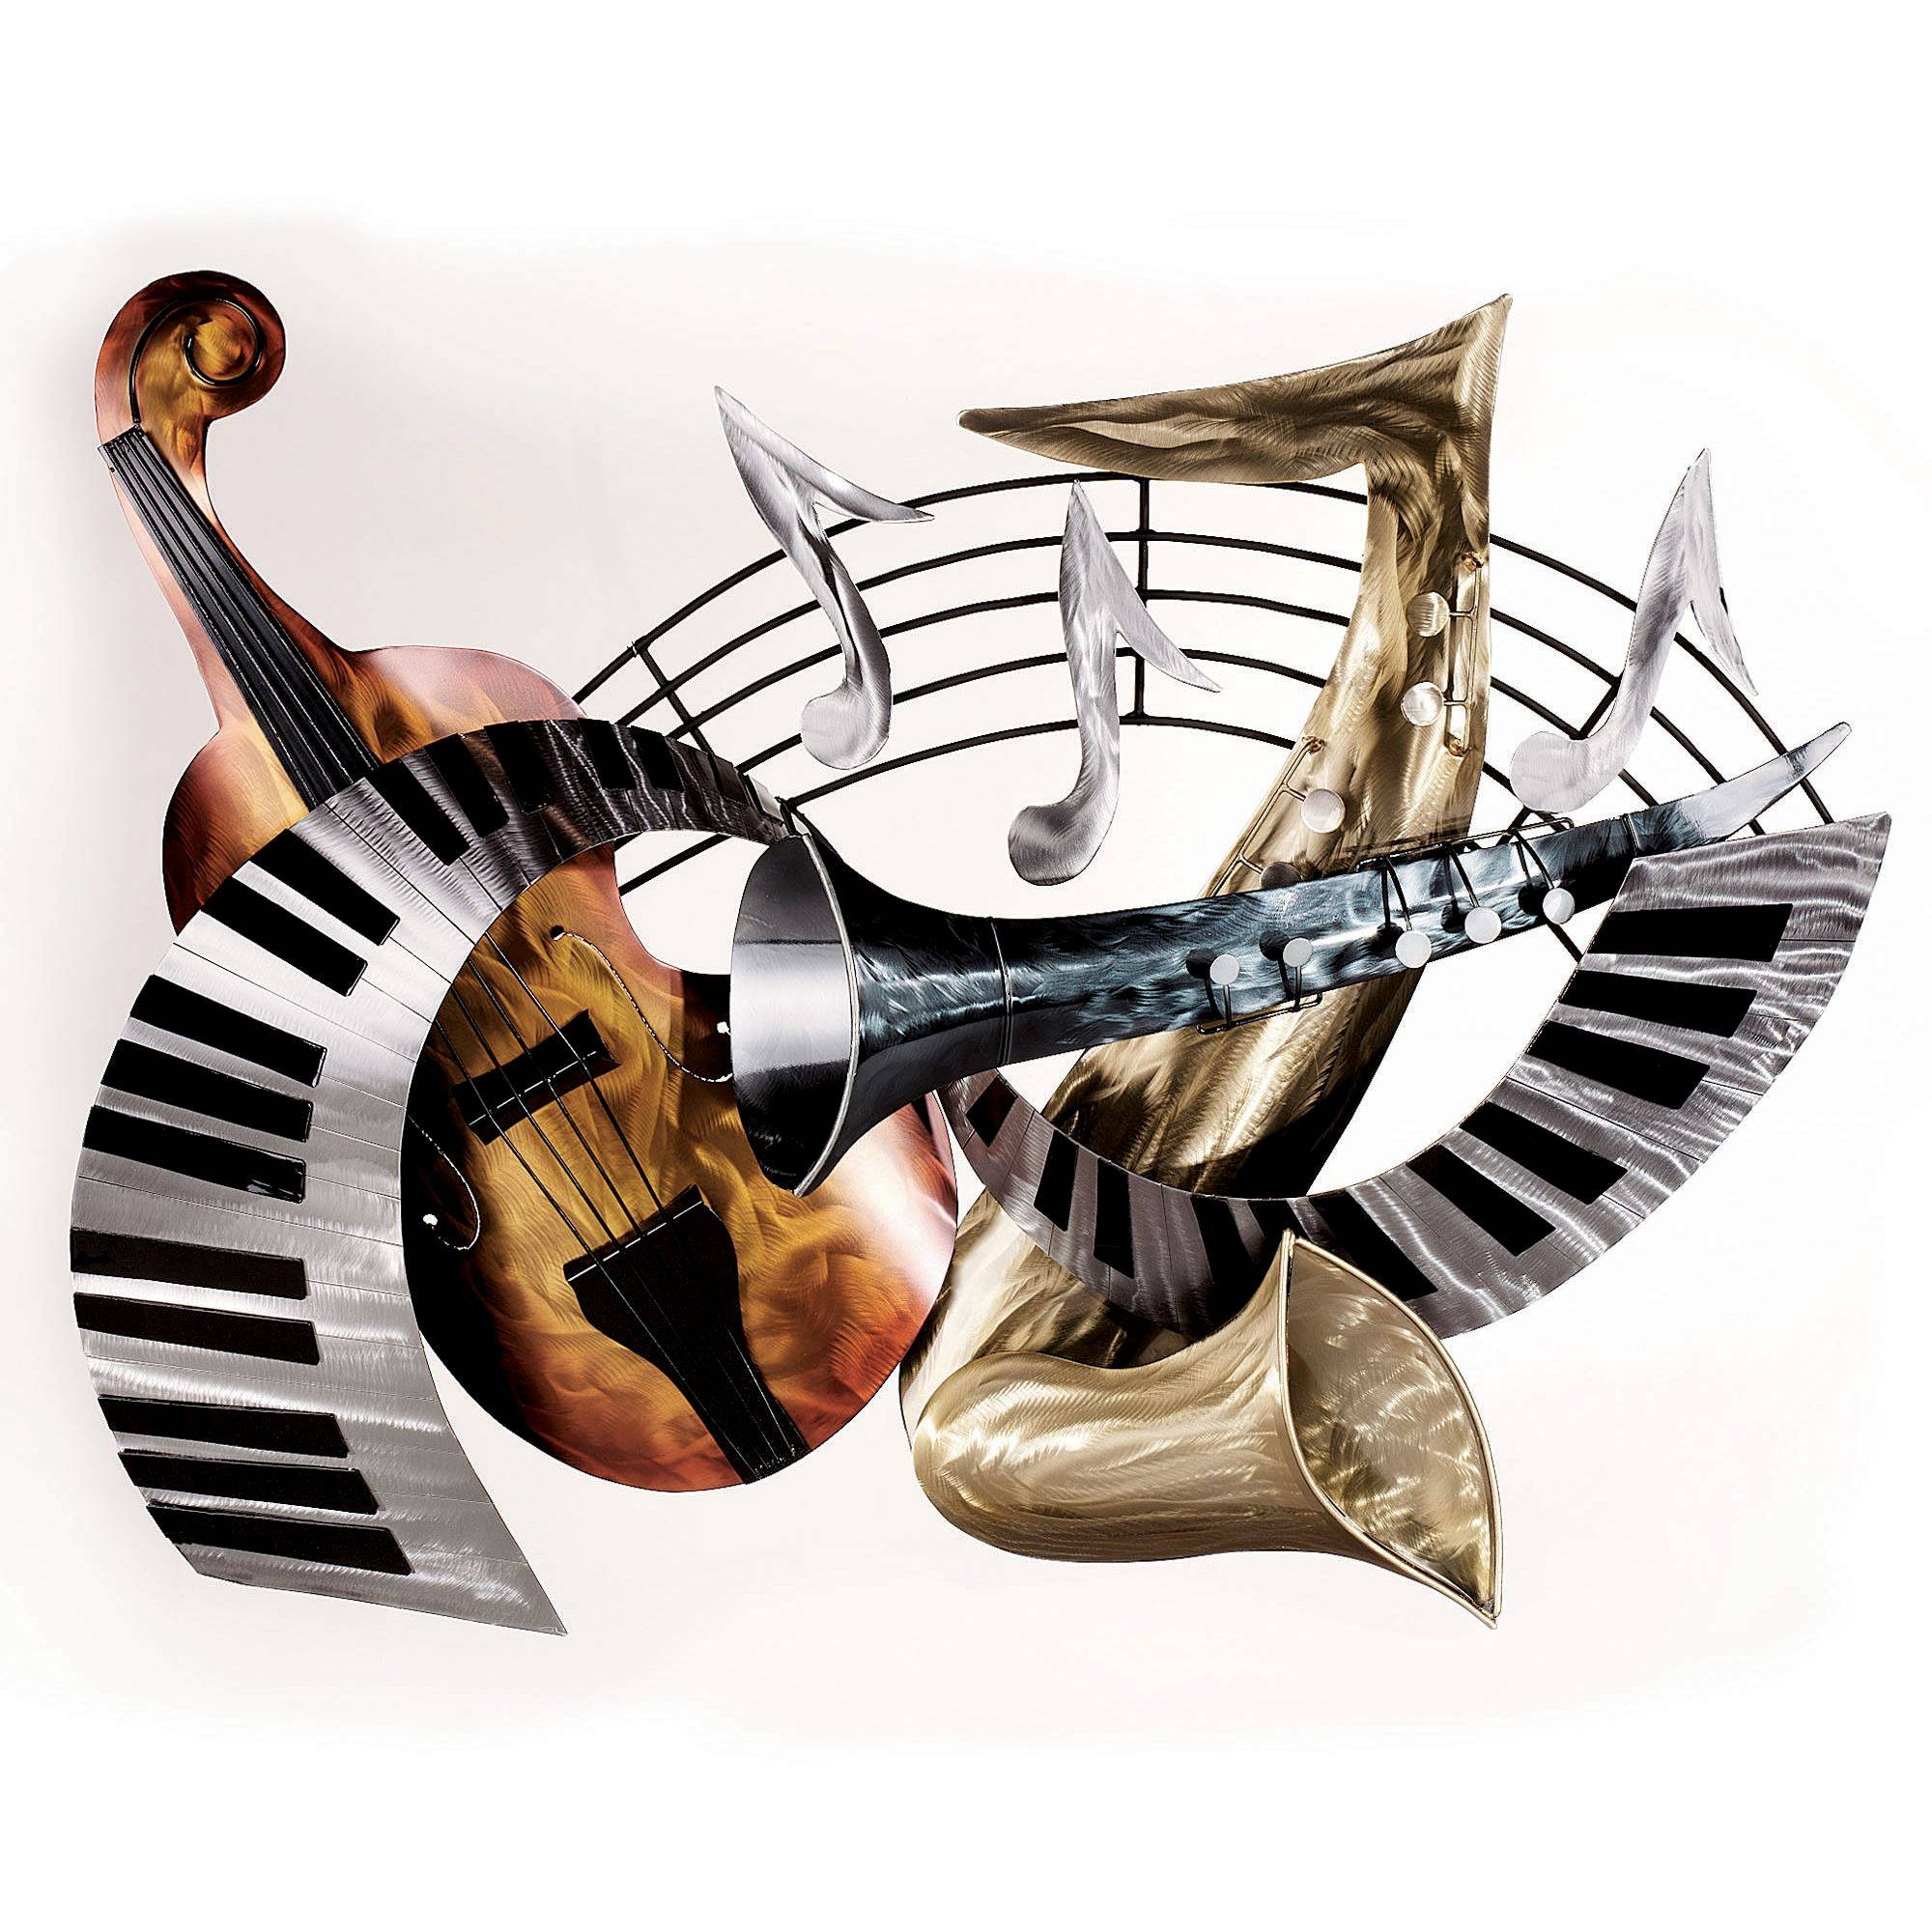 Live At The Lounge Metal Wall Sculpture With Regard To Most Popular Musical Instruments Metal Wall Art (View 4 of 20)